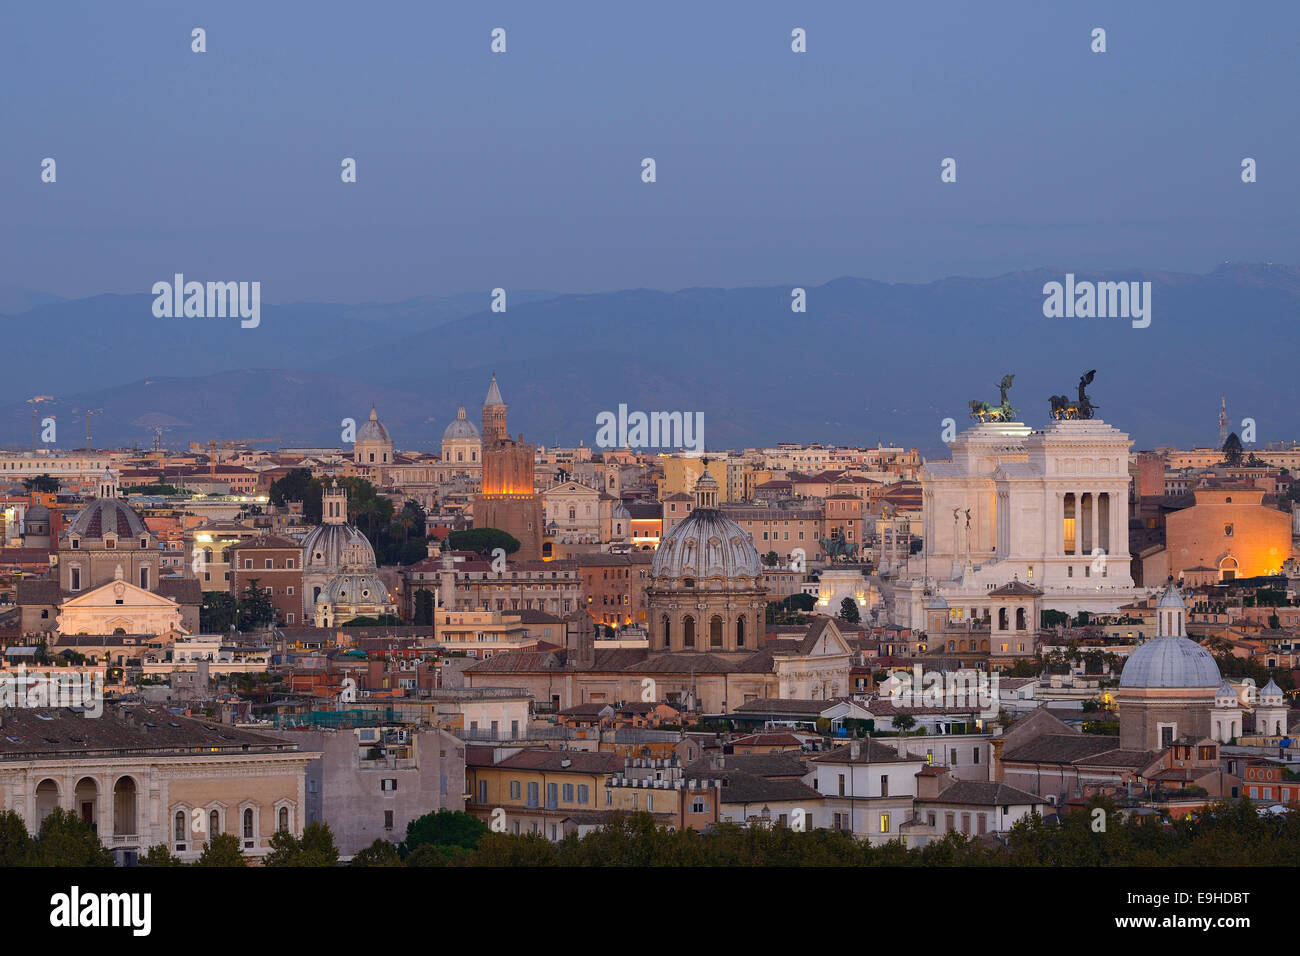 Rome. Italy. View across the city towards Piazza Venezia  from Piazza Garibaldi on the Gianicolo hill. Stock Photo